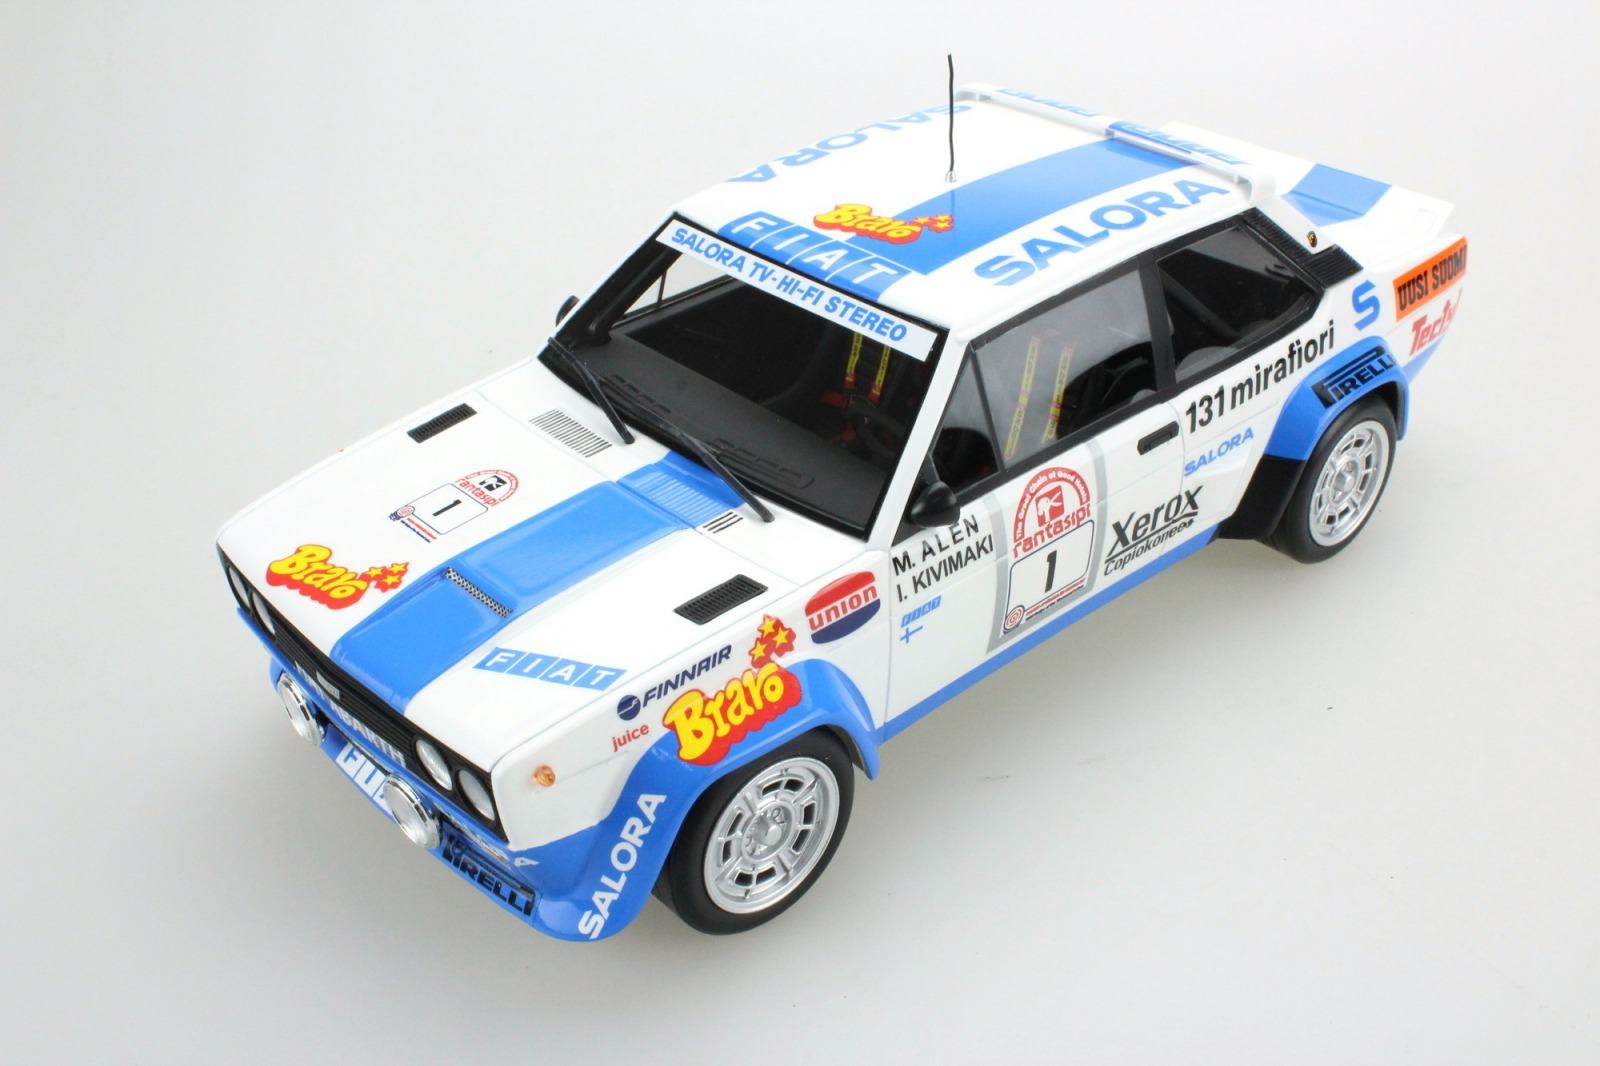 Topmarques トップマルケス 1:18 1980年1000湖ラリー フィアット 131 アバルト No.1FIAT - 131 ABARTH N 1 WINNER RALLY 1000 LAKES 1980 M.ALEN - I.KIVIMAKI 1/18 by Topmarques NEW